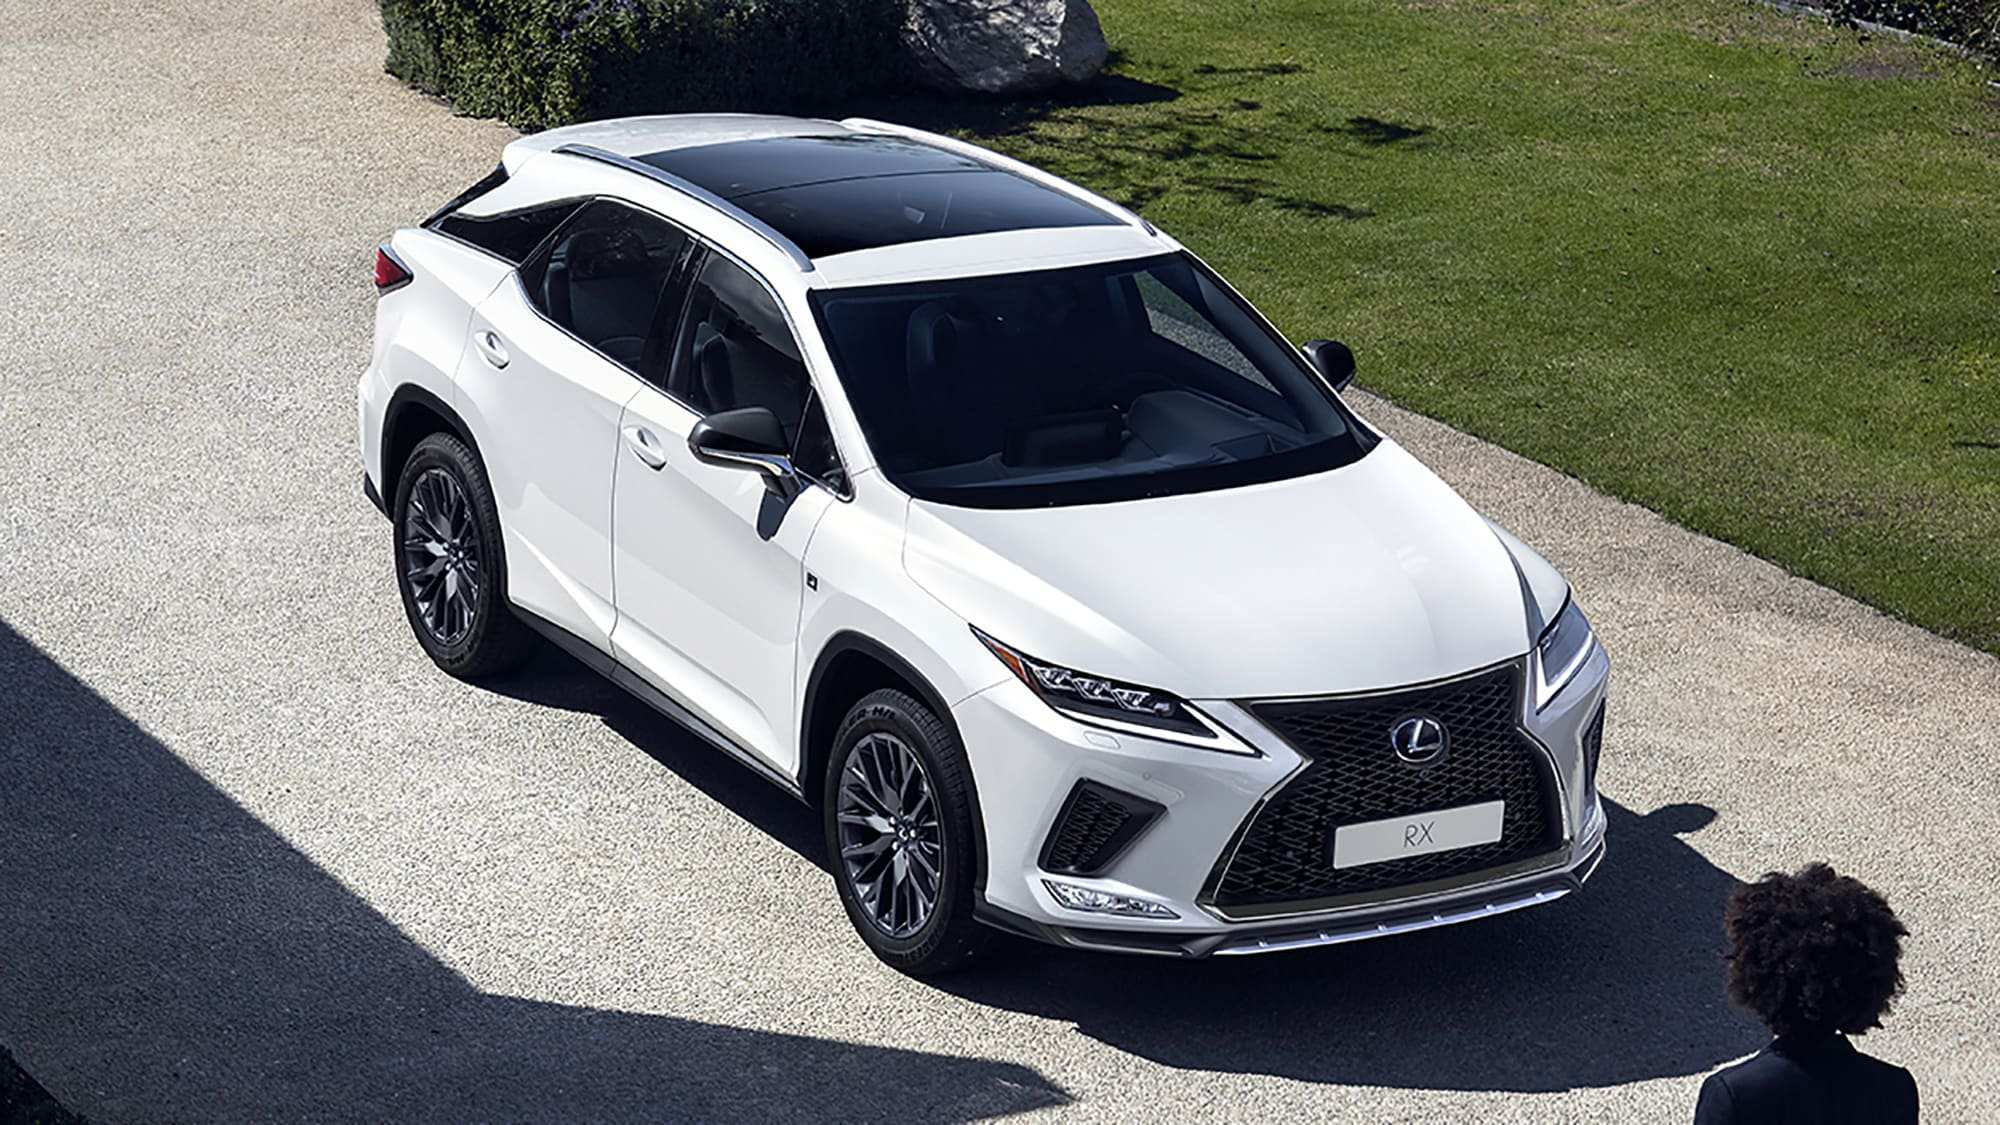 30 All New 2020 Lexus Rx Release Date Price And Review